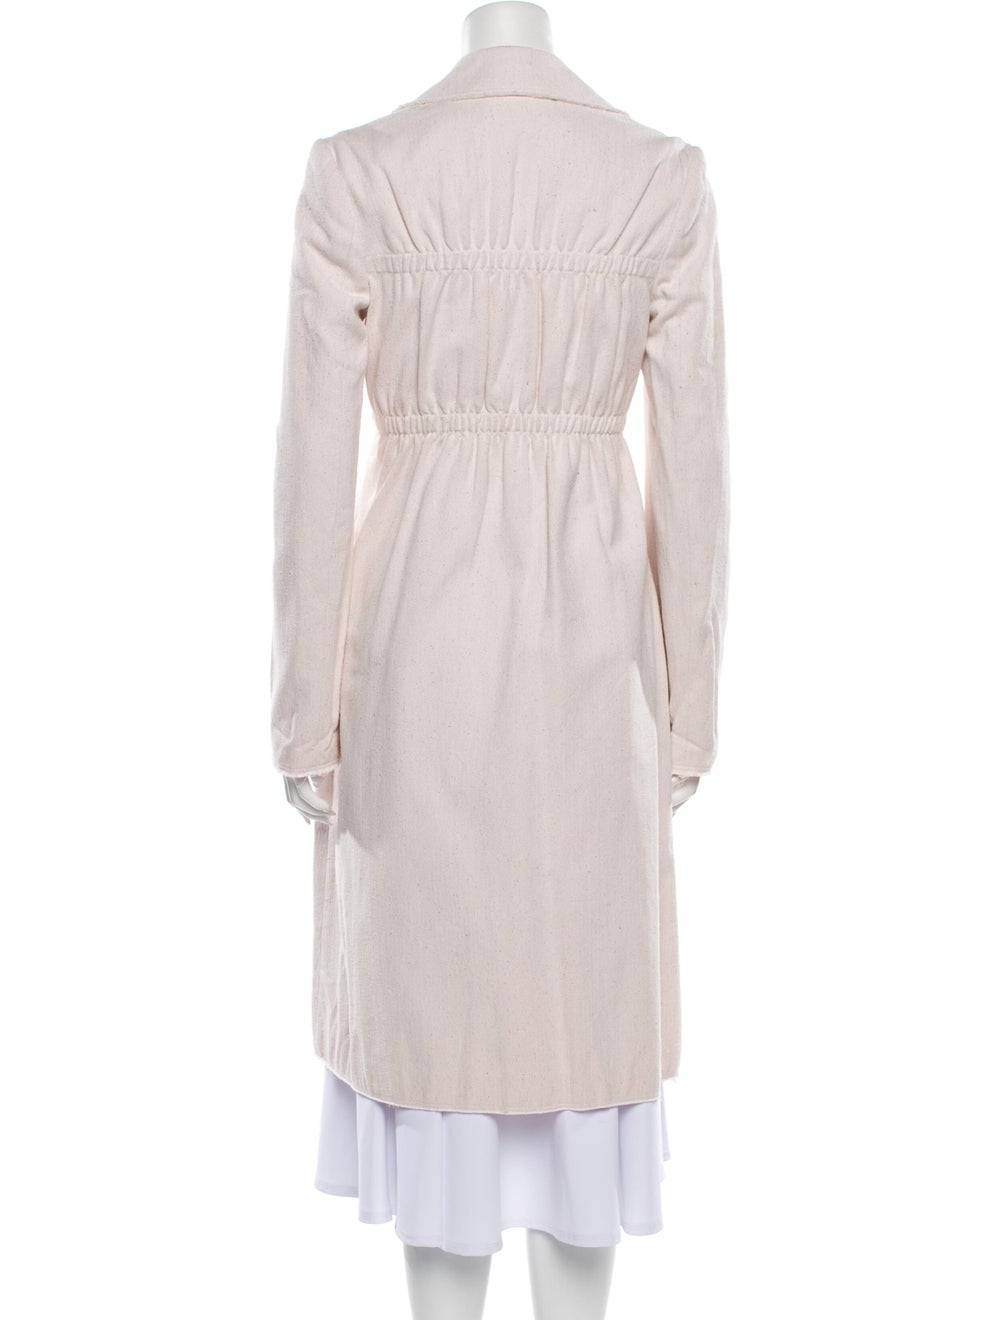 Ports 1961 Trench Coat Pink - image 3